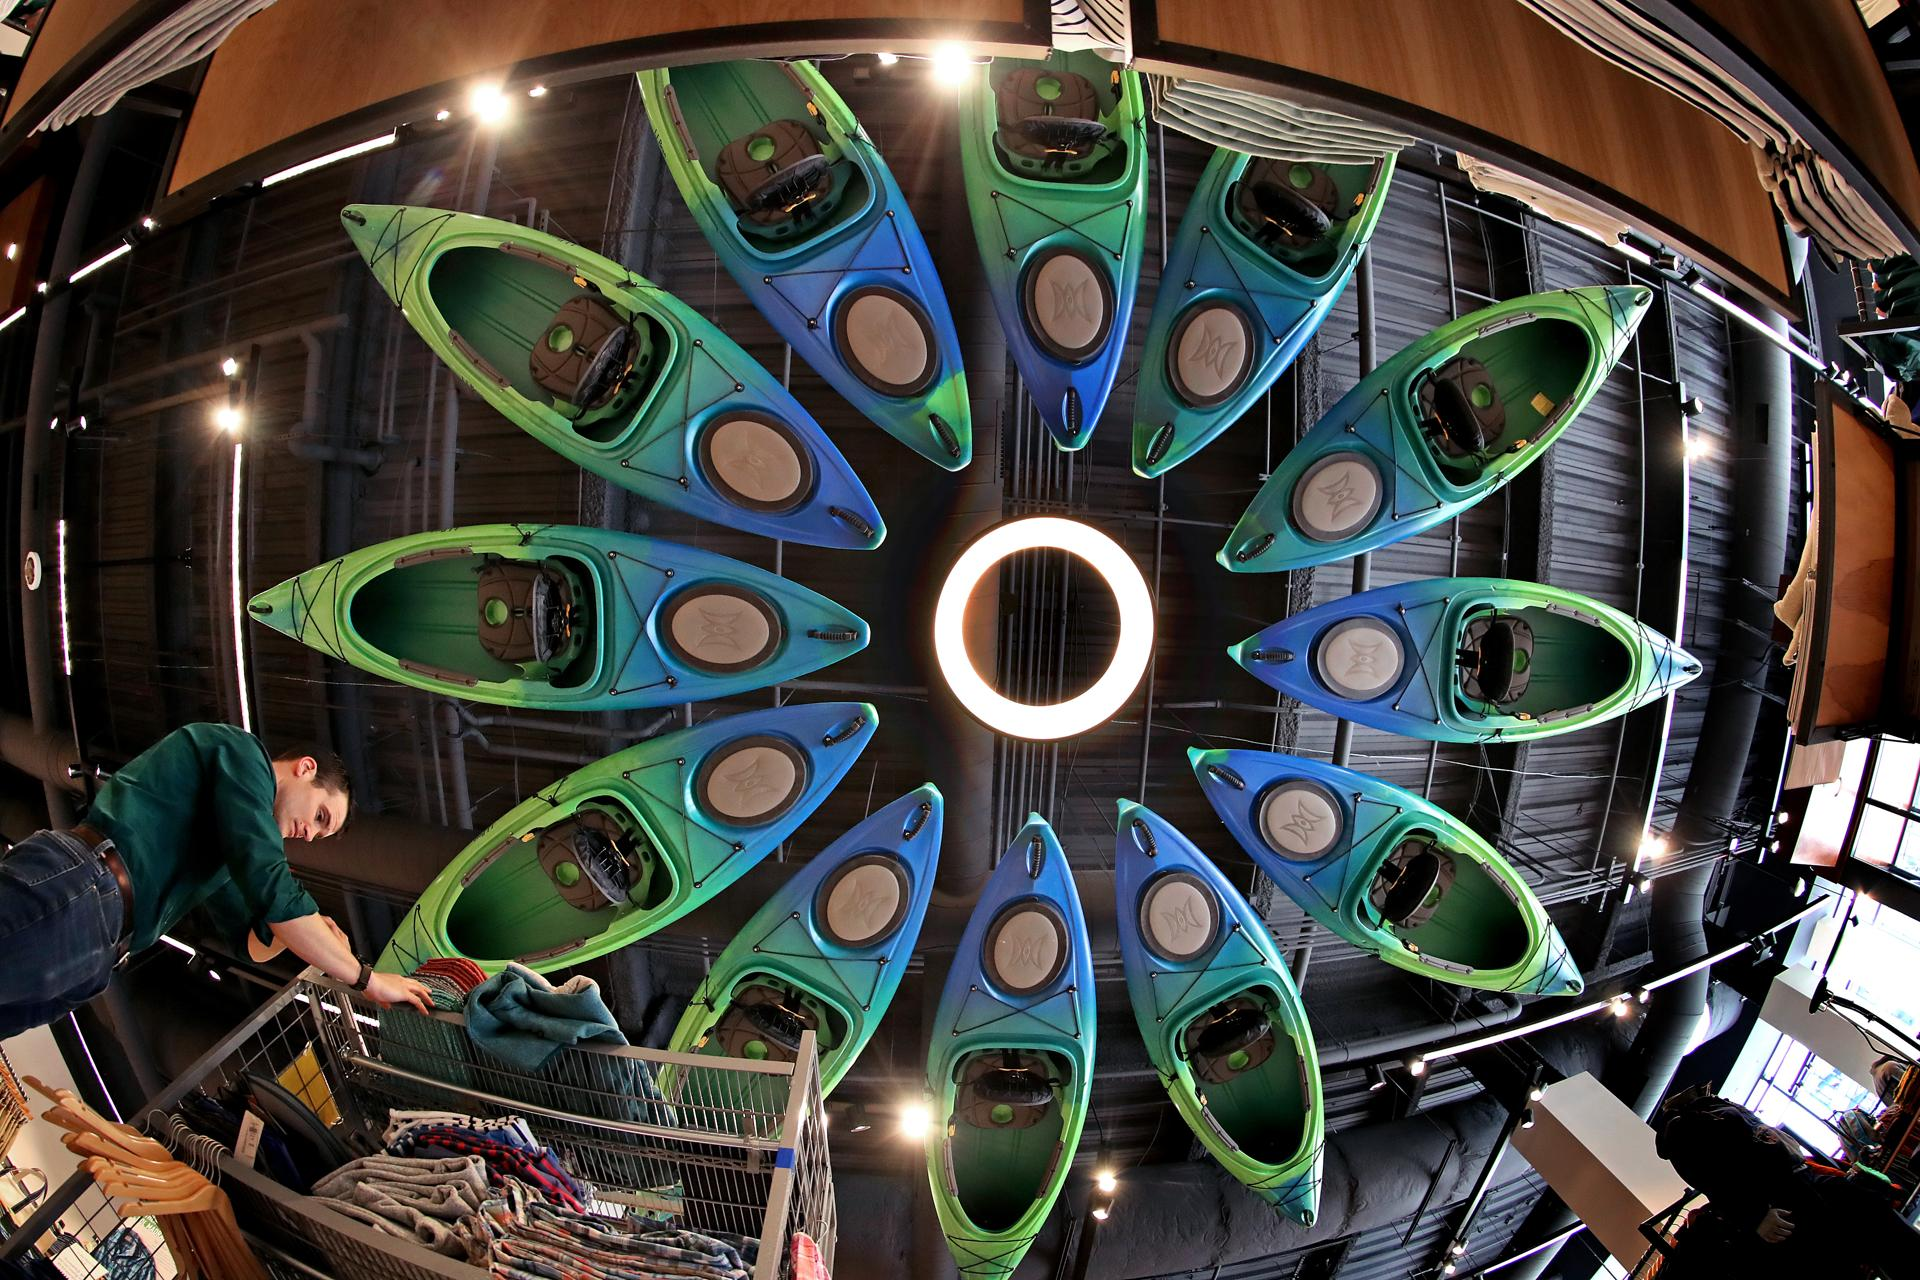 BOSTON, MA - 3/27/2018: Kayaks are hung in the ceiling of the store for decoration as employee Greg Dorman works with setting up merchandise. L. L. Bean comes to the Seaport District in Boston which will open April 6th. (David L Ryan/Globe Staff ) SECTION: BUSINESS TOPIC